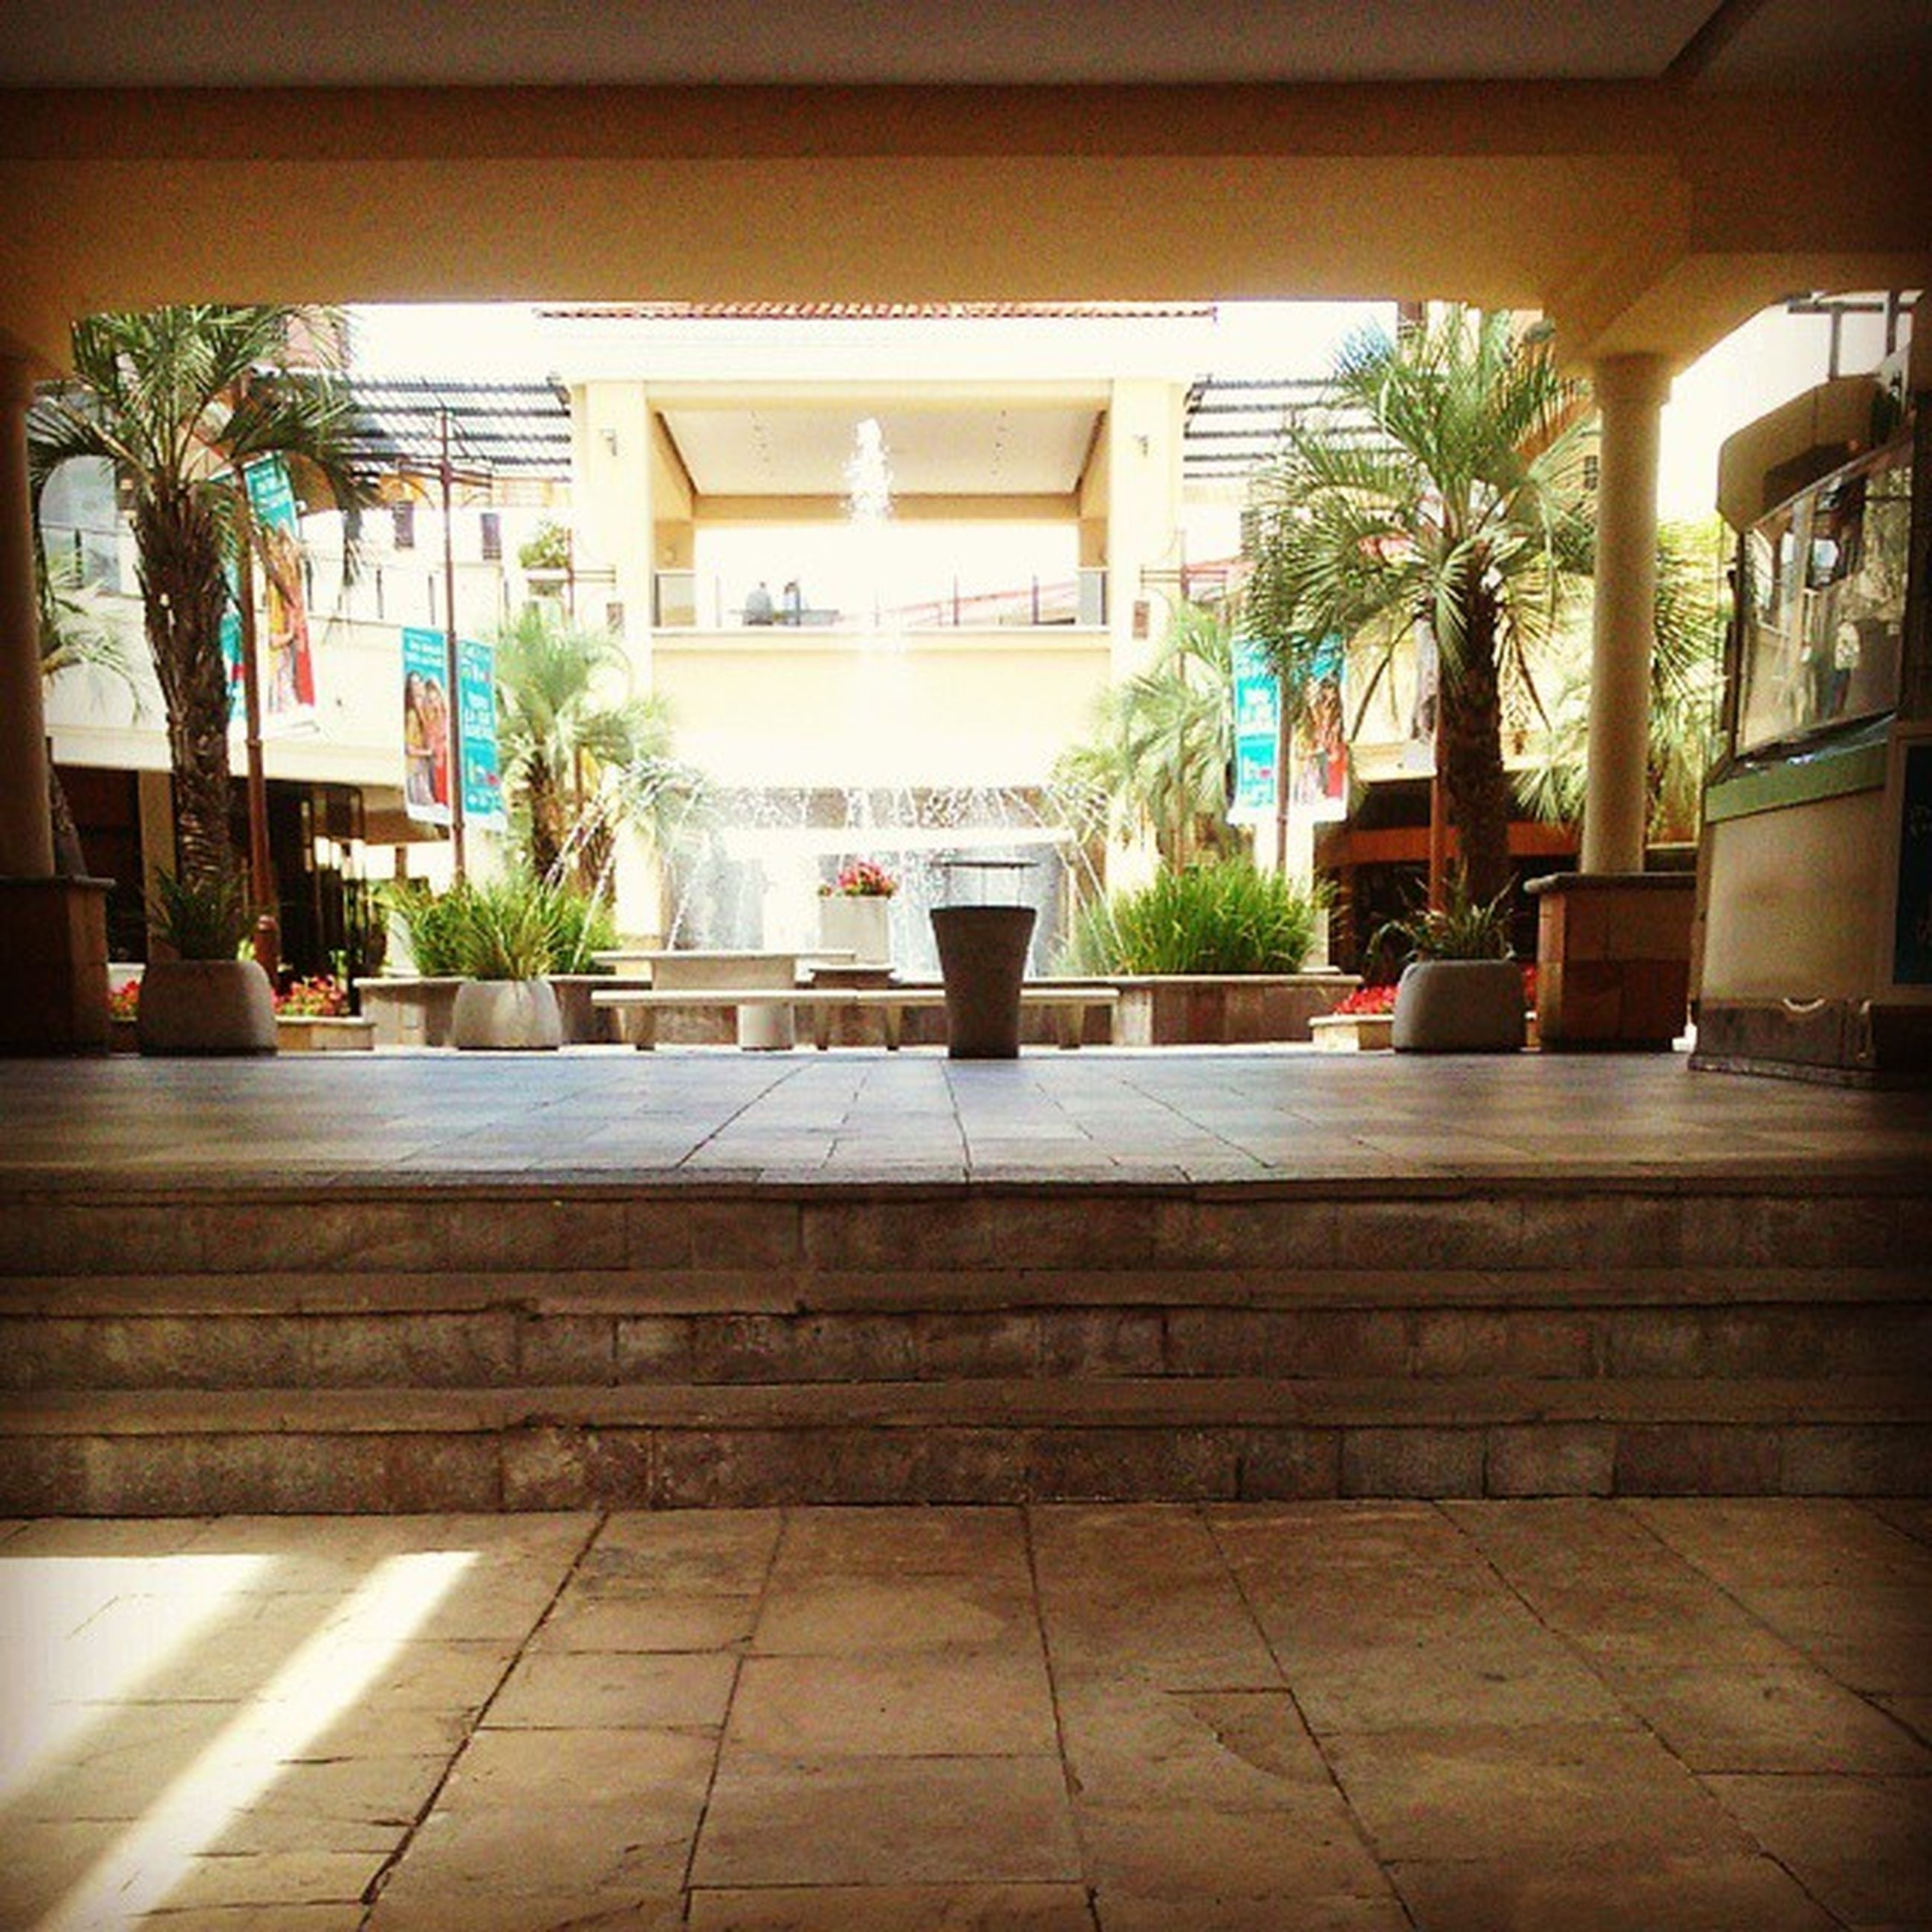 architecture, built structure, potted plant, building exterior, palm tree, tree, indoors, tiled floor, plant, growth, flooring, house, window, sunlight, building, no people, day, empty, residential structure, residential building